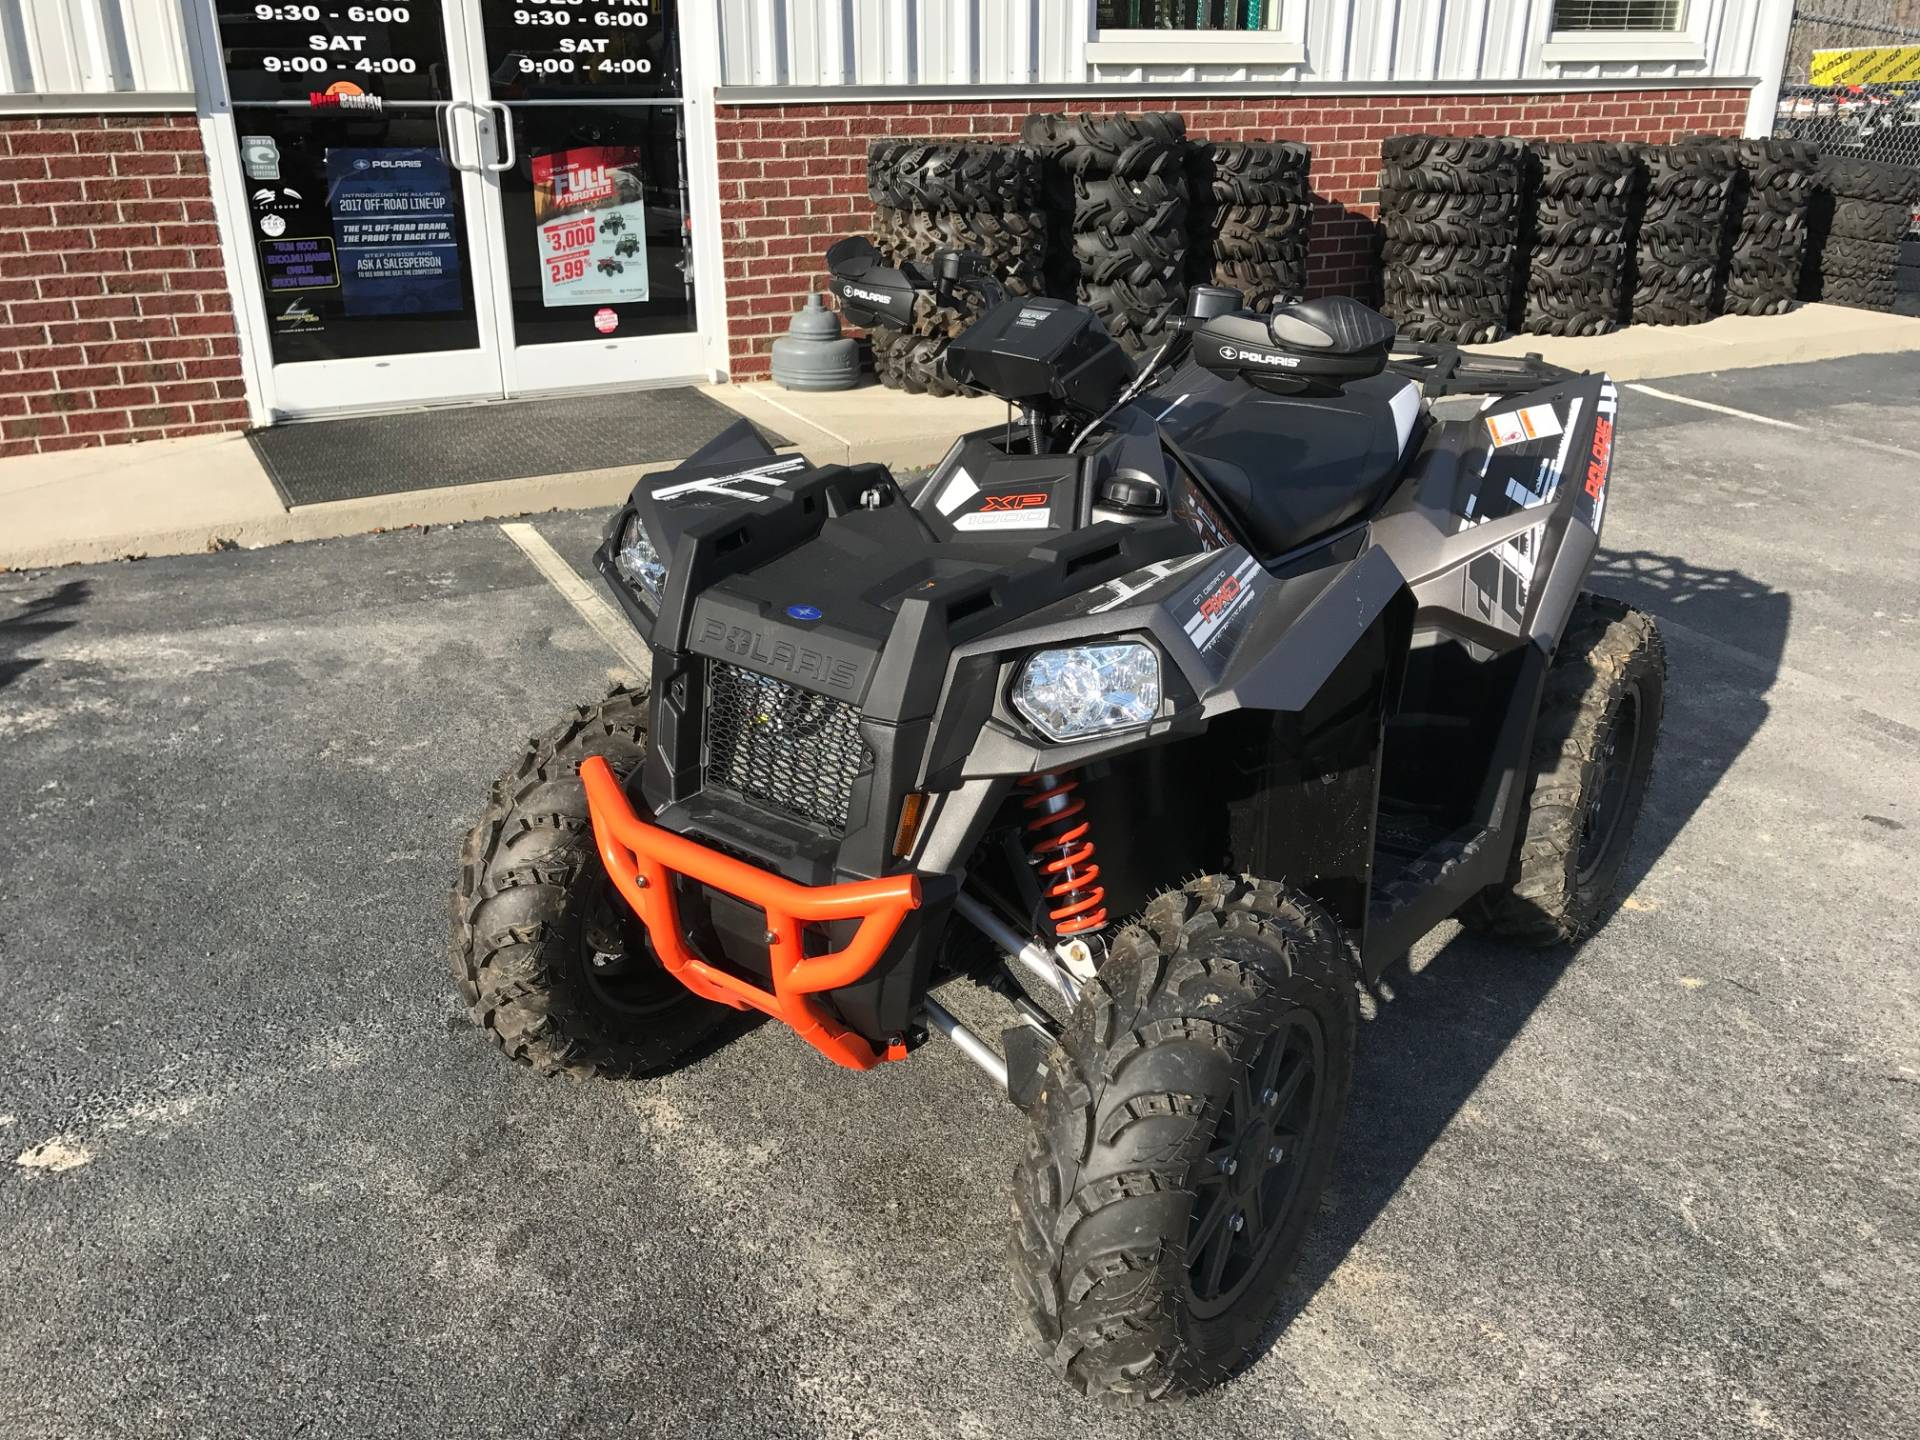 2017 polaris scrambler xp 1000 for sale greenville nc 9396. Black Bedroom Furniture Sets. Home Design Ideas